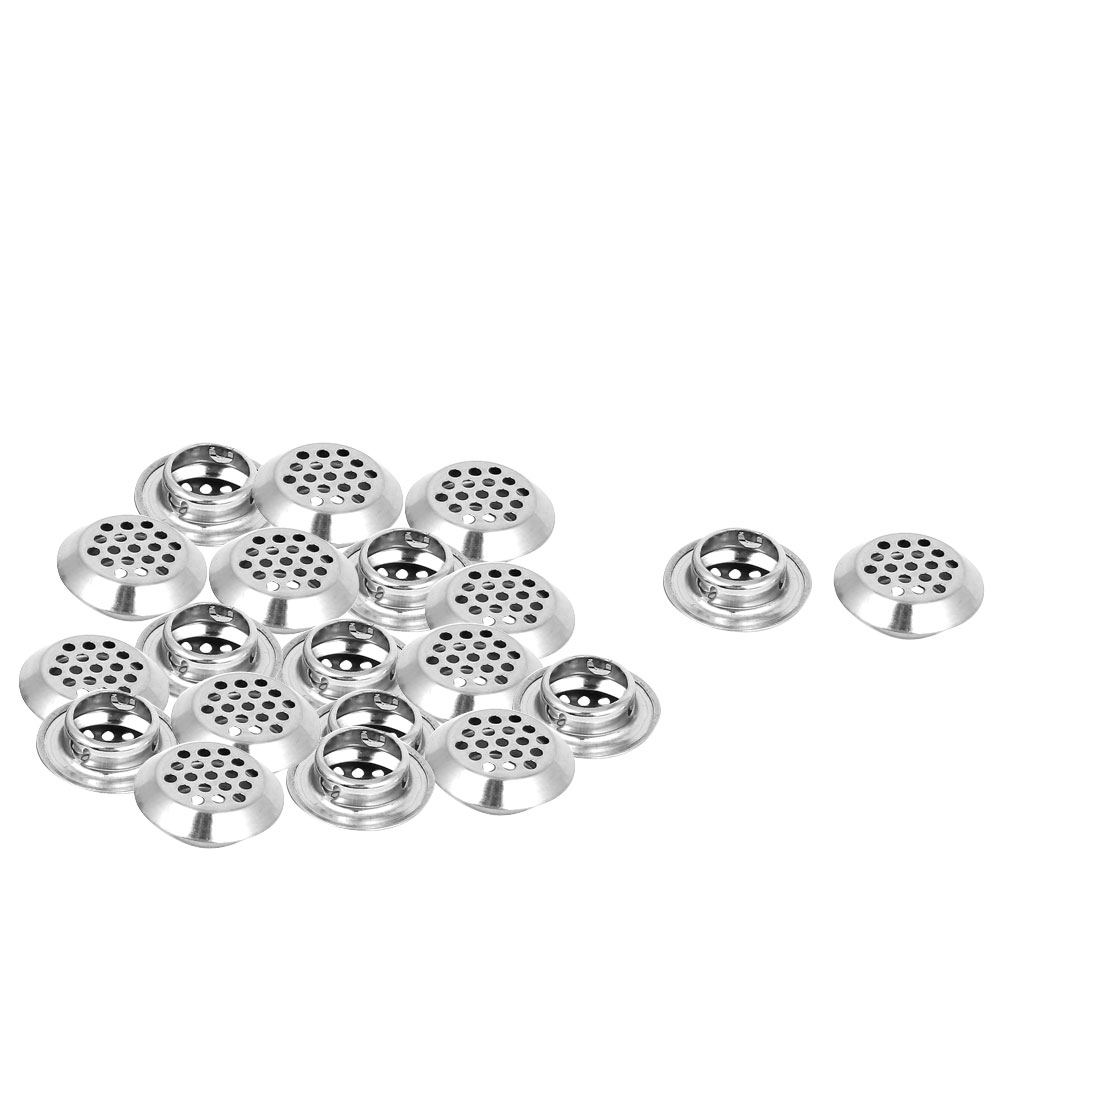 Metal 21mm Bottom Dia Perforated Round Mesh Air Vents Ventilation Louvers 20pcs